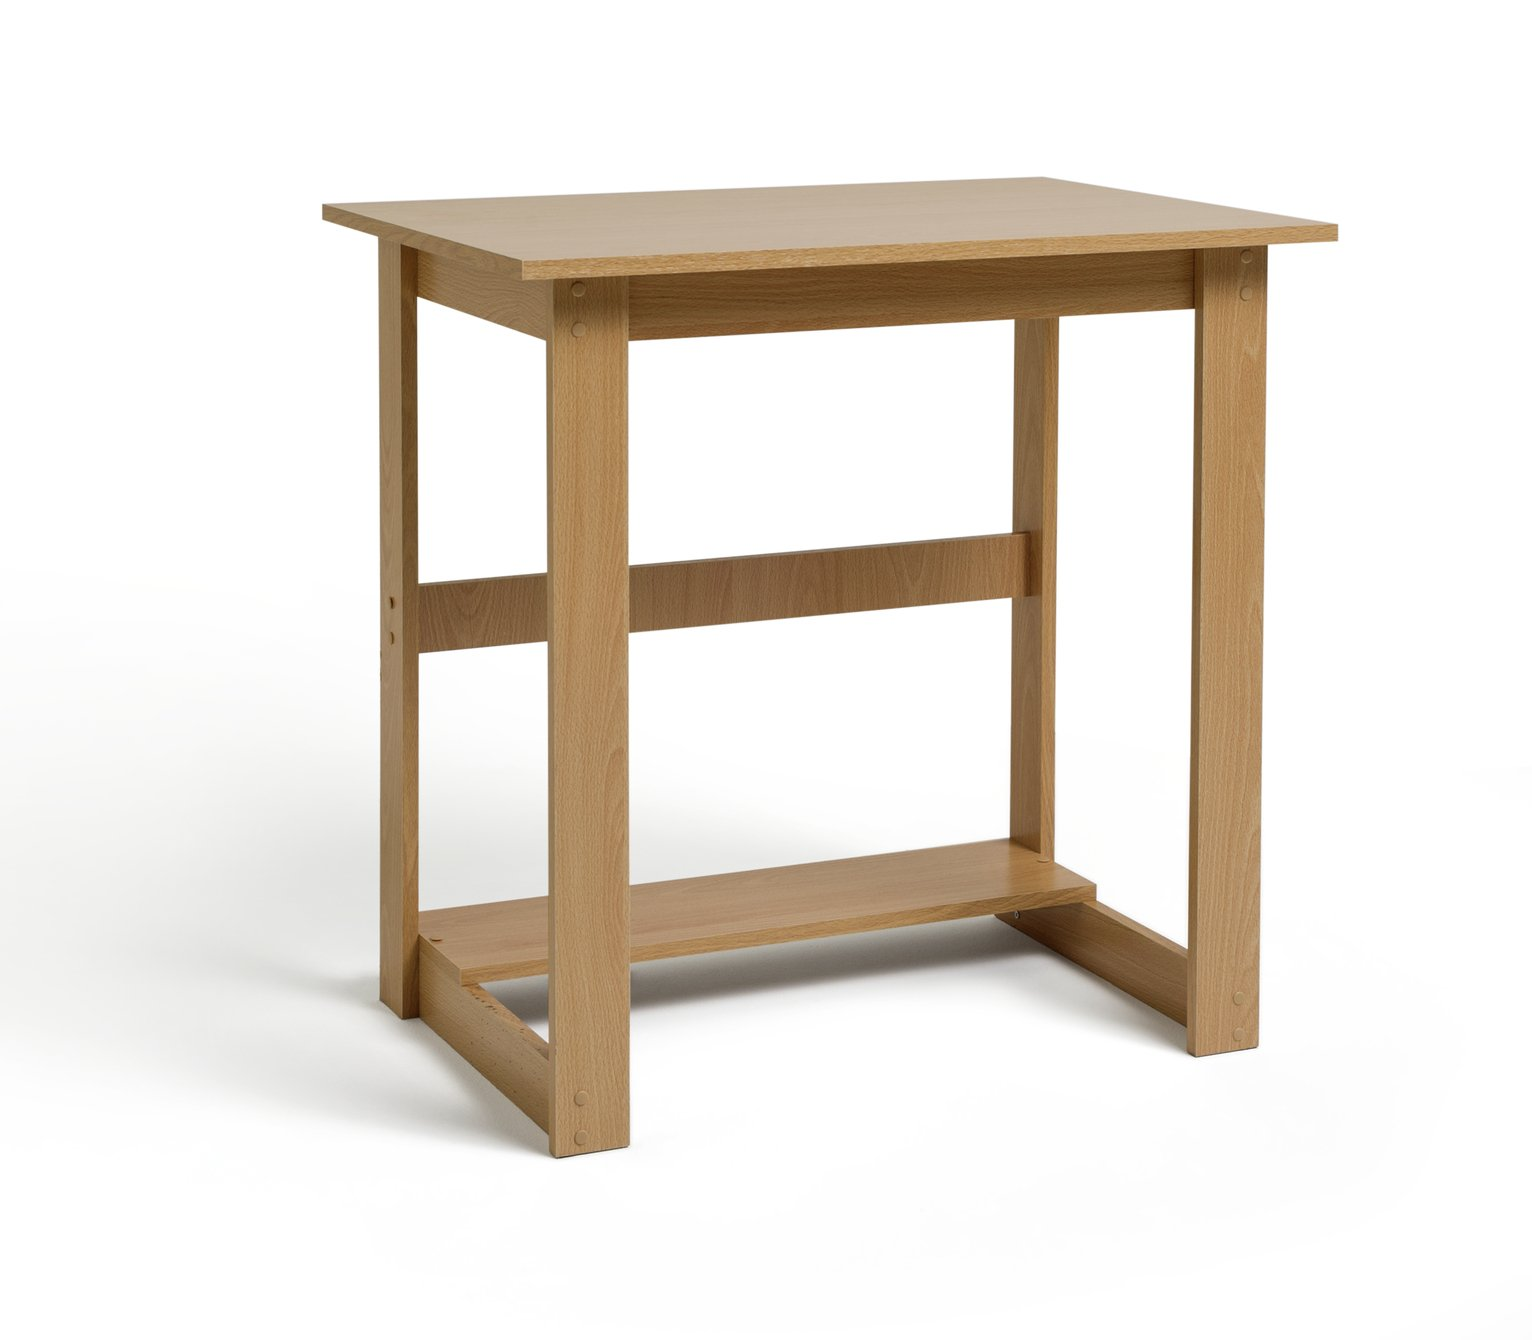 Argos Home Office Desk   Beech Effect